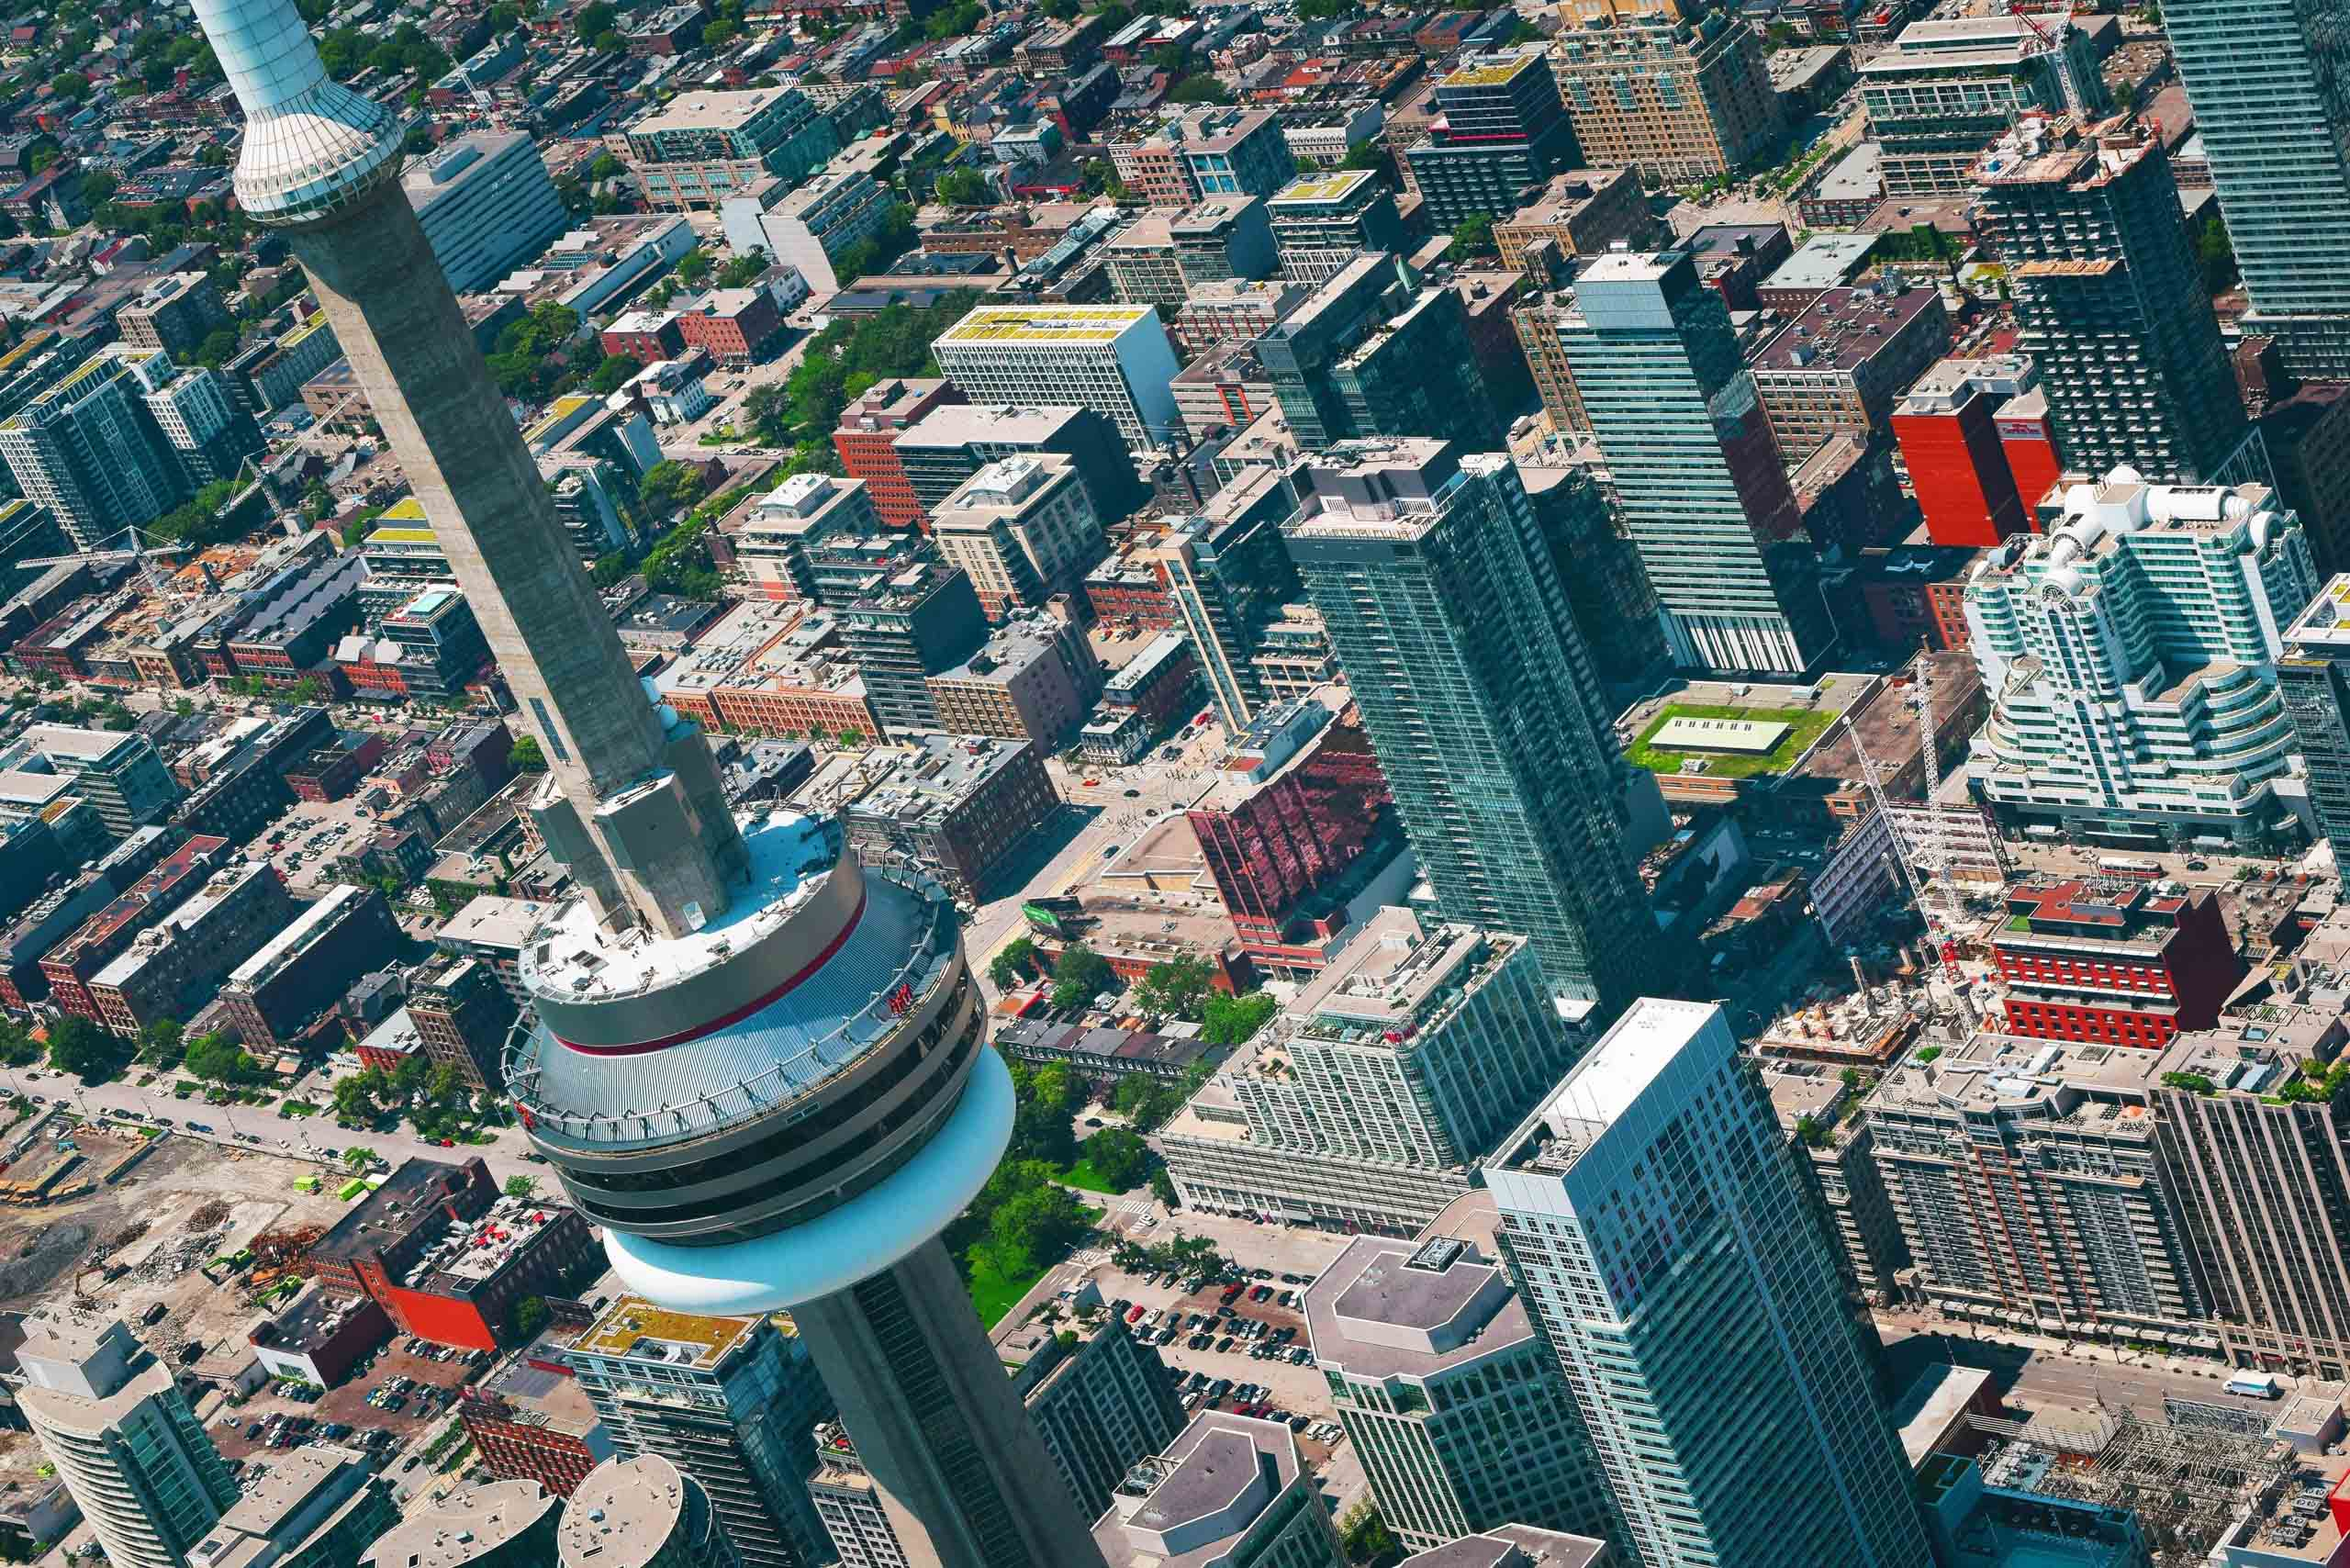 View the city from above from Toronto's CN Tower.